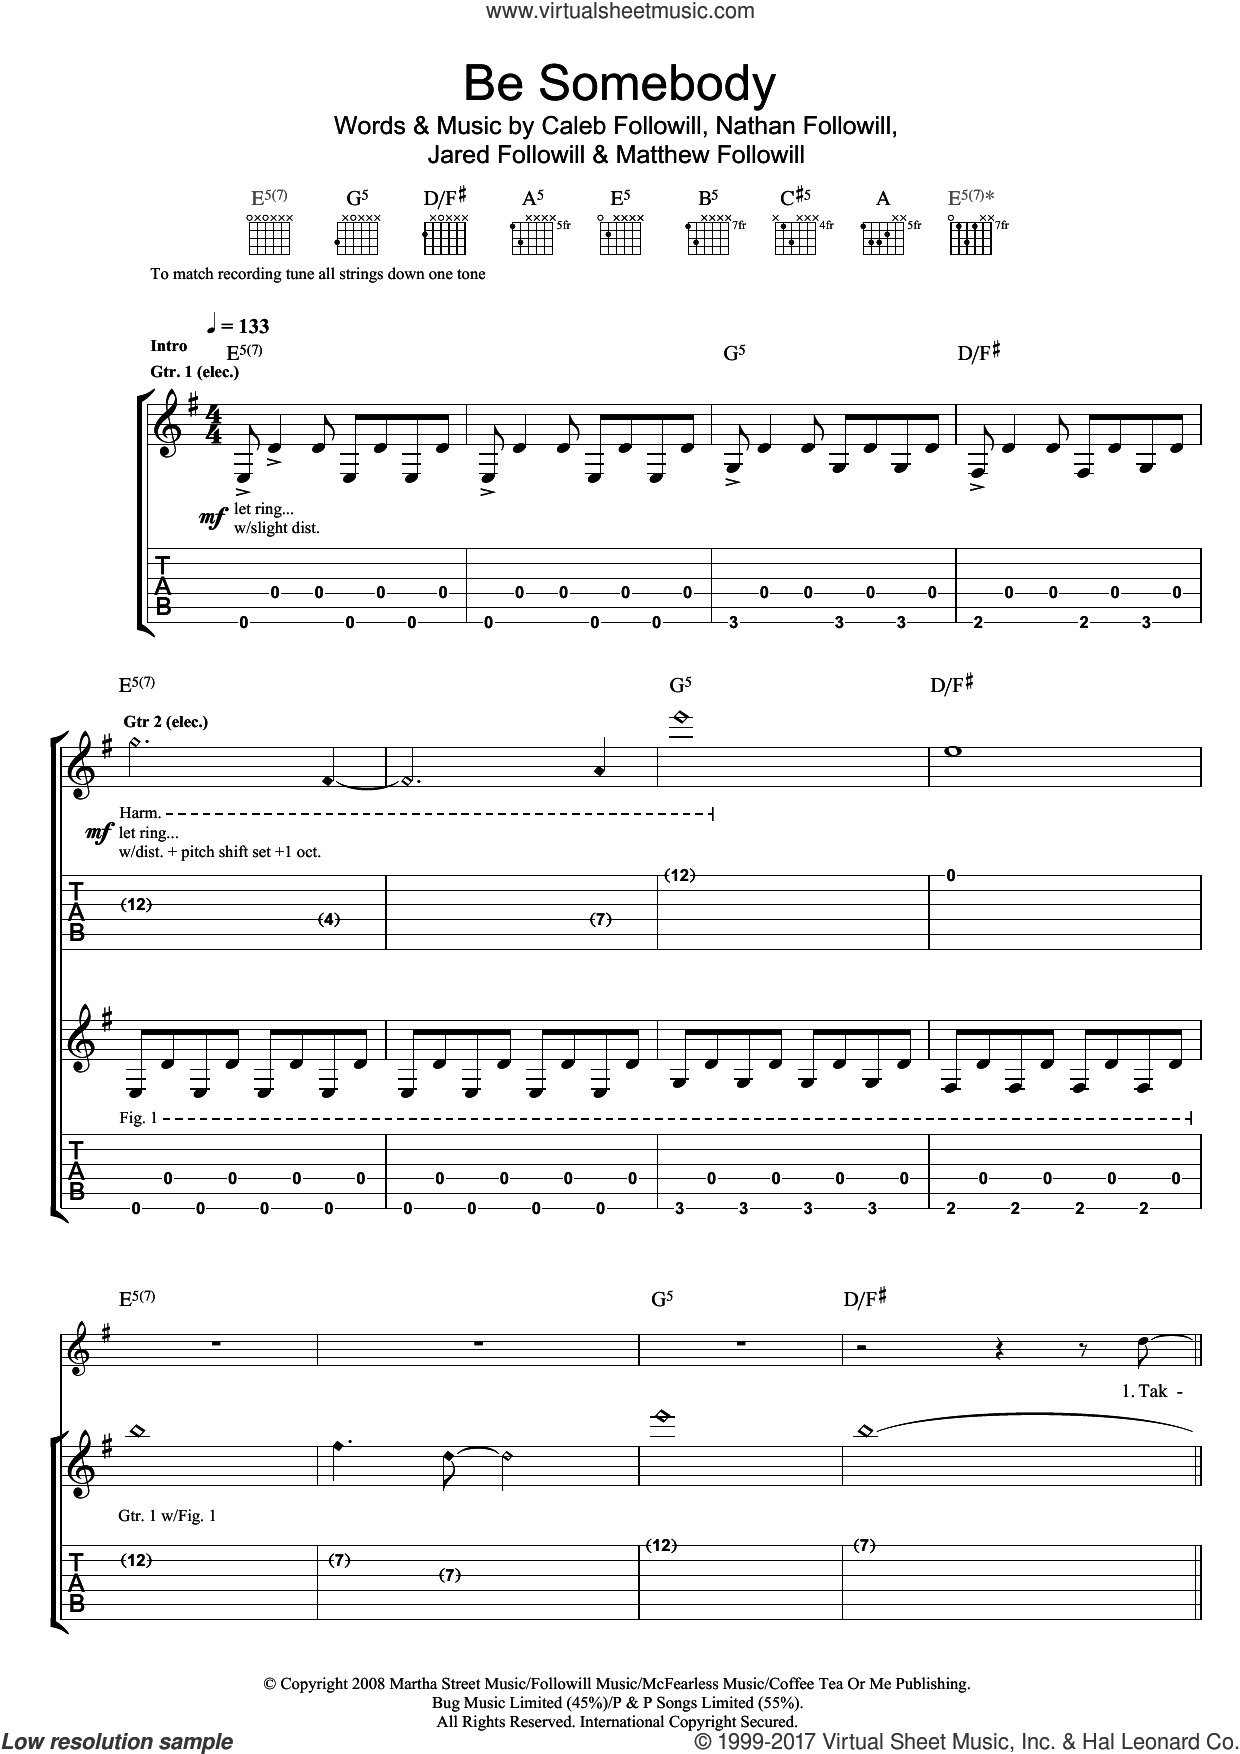 Be Somebody sheet music for guitar (tablature) by Kings Of Leon, Caleb Followill, Jared Followill, Matthew Followill and Nathan Followill, intermediate skill level